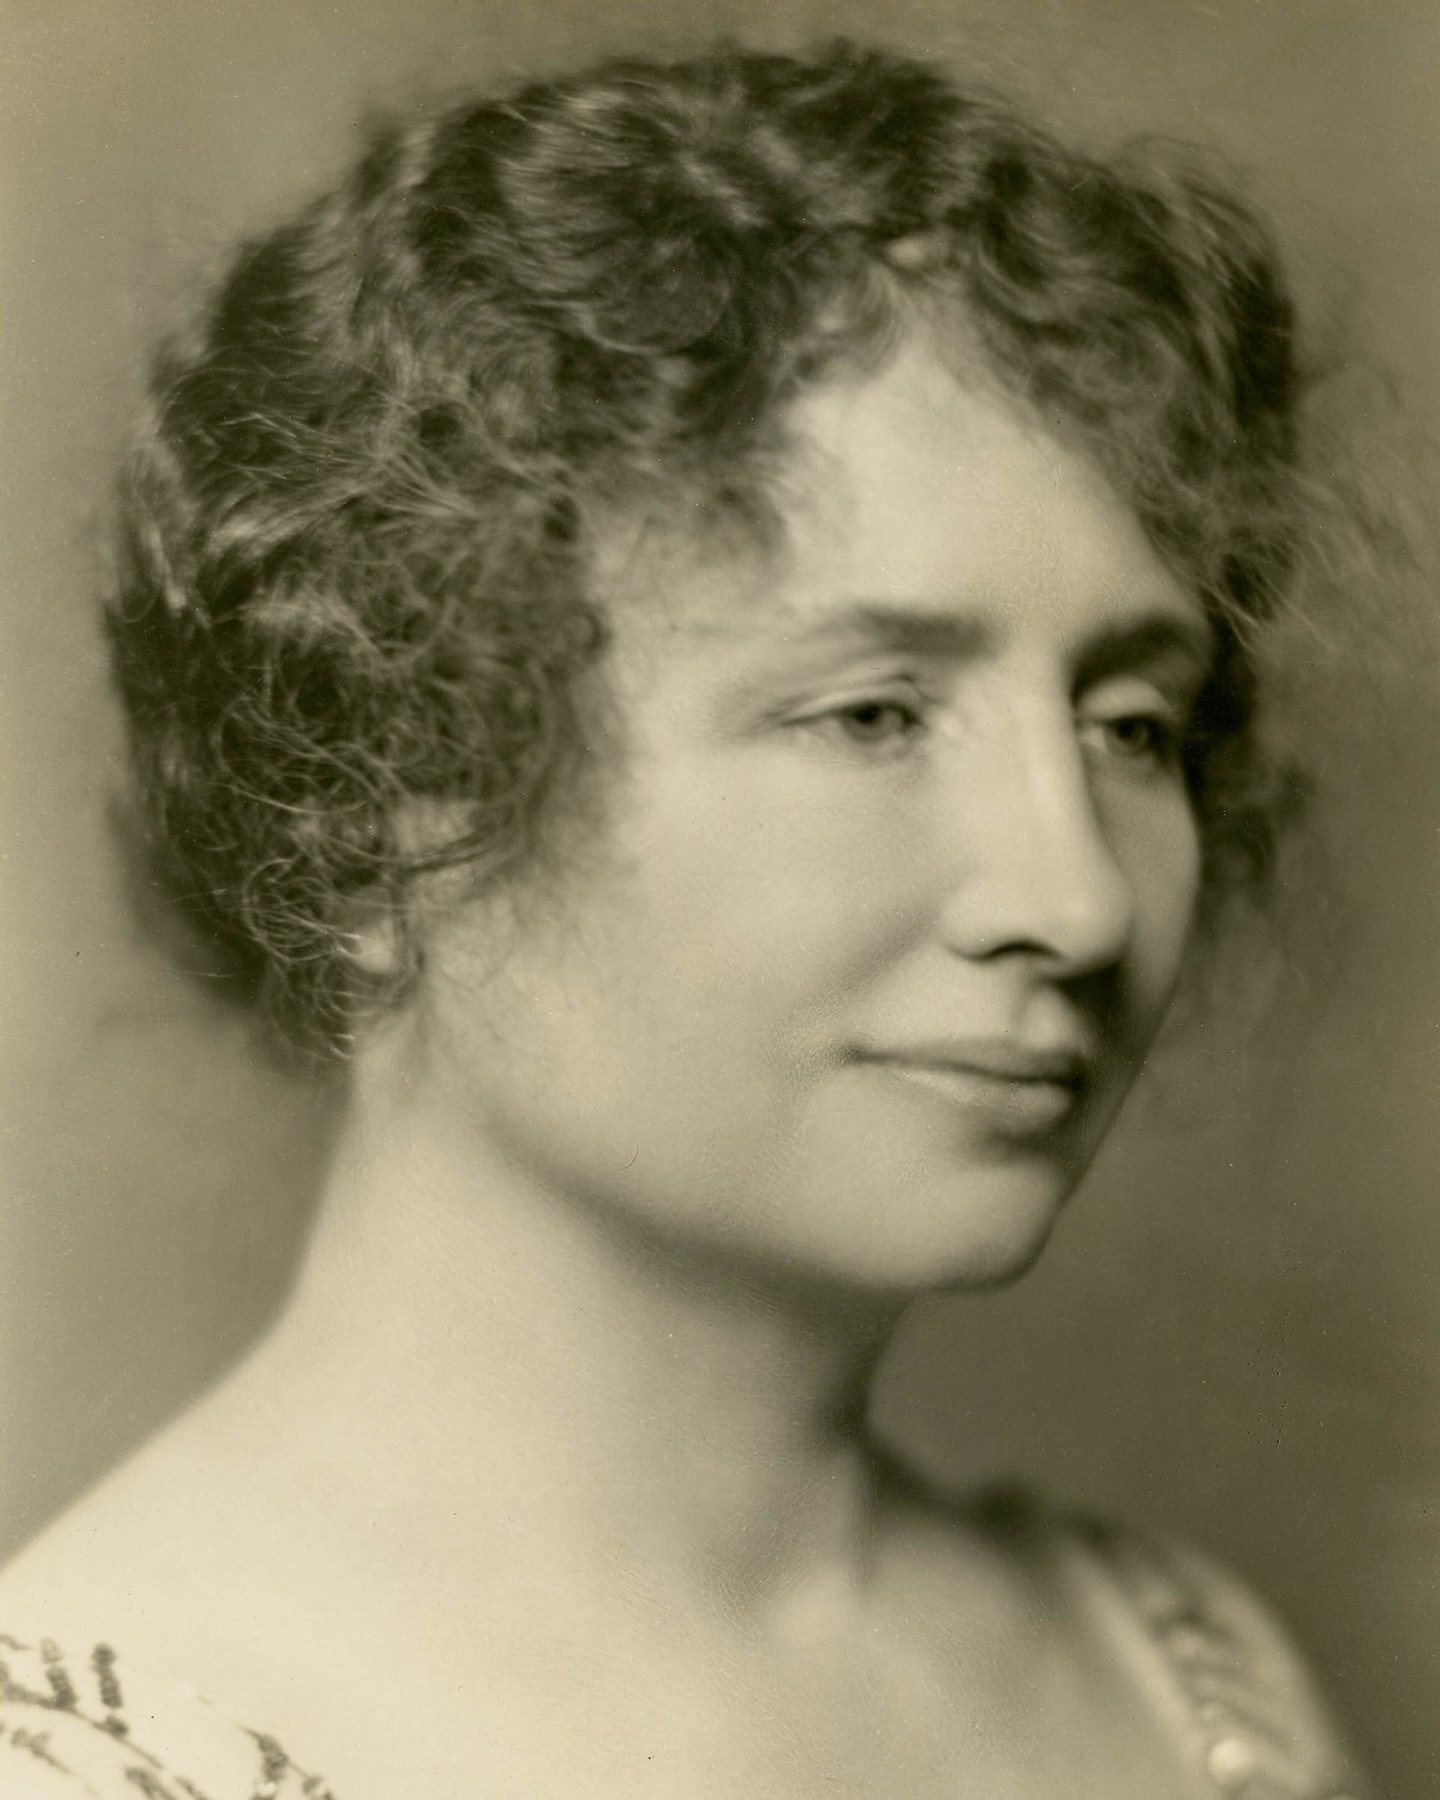 """⏳ """"Compiled in the 1920s and early 1930s by the Denver-based publisher James Alexander Semple, the """"Notable American Women"""" portfolio is an unvarnished time capsule of both celebrated and unsung women who made important contributions to American society and upon whose shoulders we all stand today."""" ⏳  Let Wendy Grossman (@wendy_grossman) introduce you to the Semple Portfolio of Notable Women in her essay """"On Their Shoulders"""". In it, she discusses the cultural and historical importance of Semple's unique project, as well as its faults along the lines of race and class.  Check out the link in our bio to read about the portfolio and the implications of who was and was not selected for inclusion in its vision of America's women.  Above is a portrait of Helen Keller softly smiling. She sent this image to Semple when he requested to include her in his portfolio.  © James A. Semple Portfolio/MUUS Collection"""